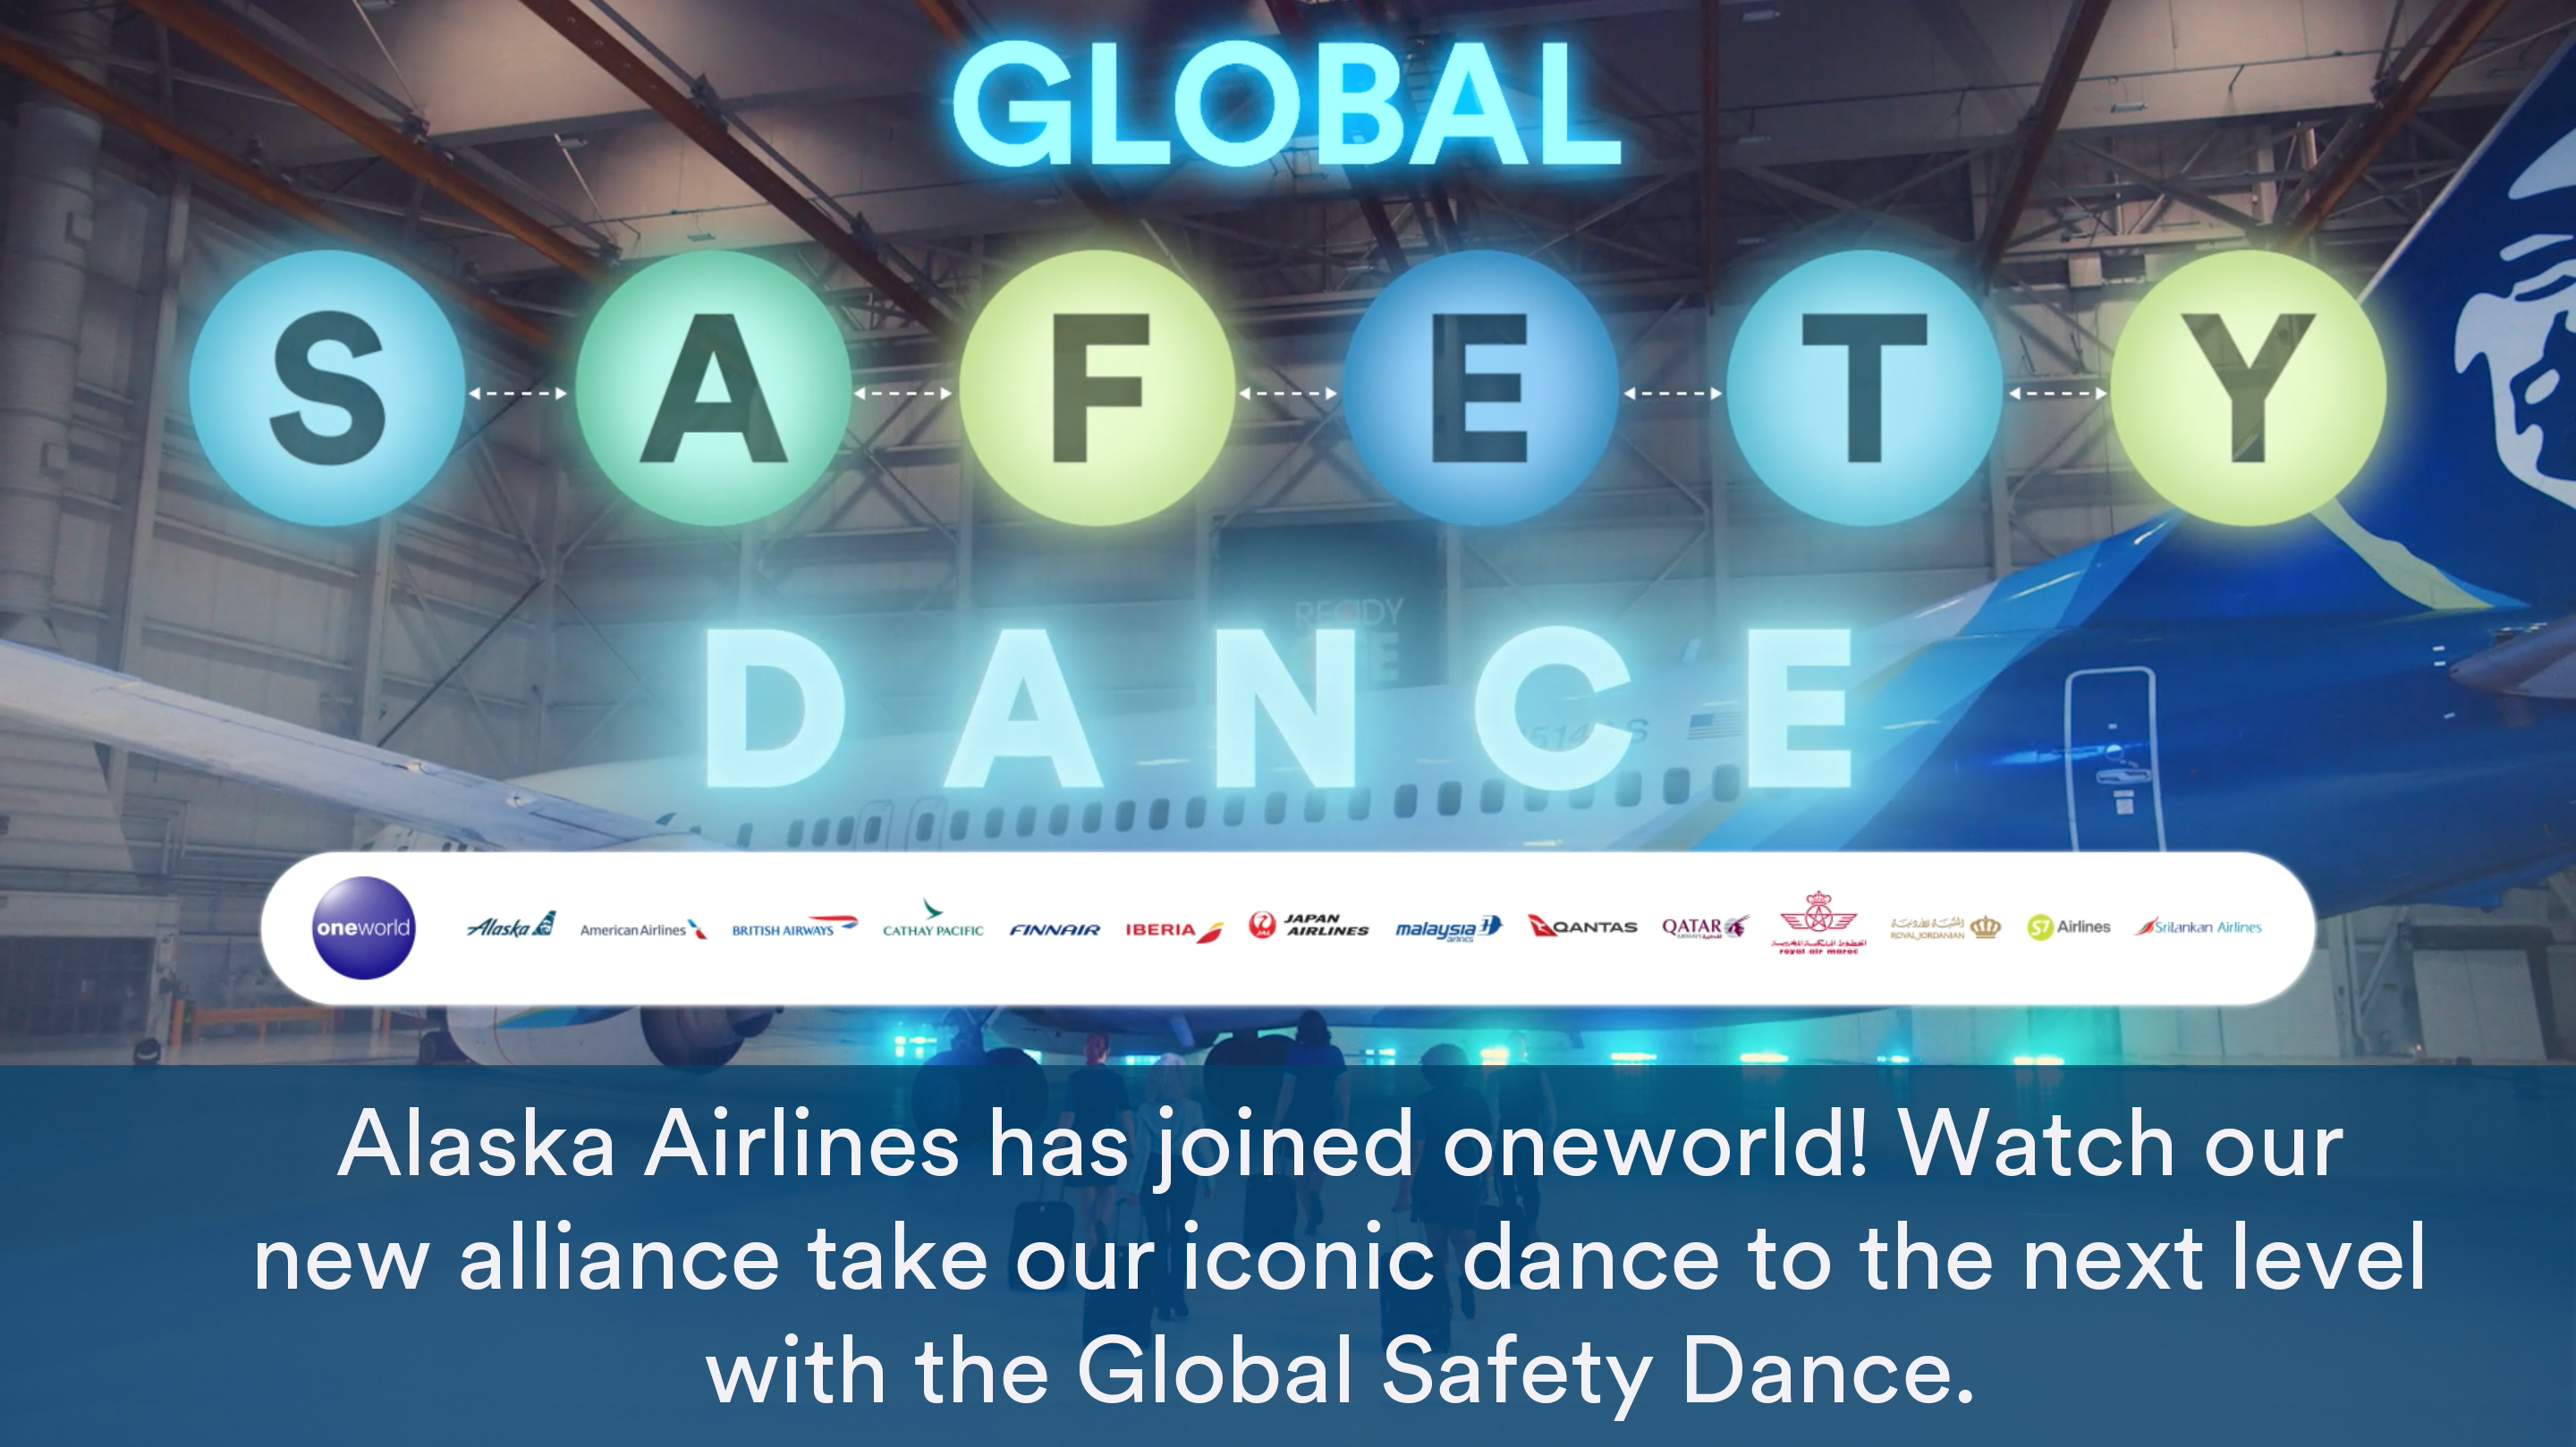 Alaska Airlines has joined oneworld! Watch our new alliance family members take our iconic dance to the next level with the Global Safety Dance.